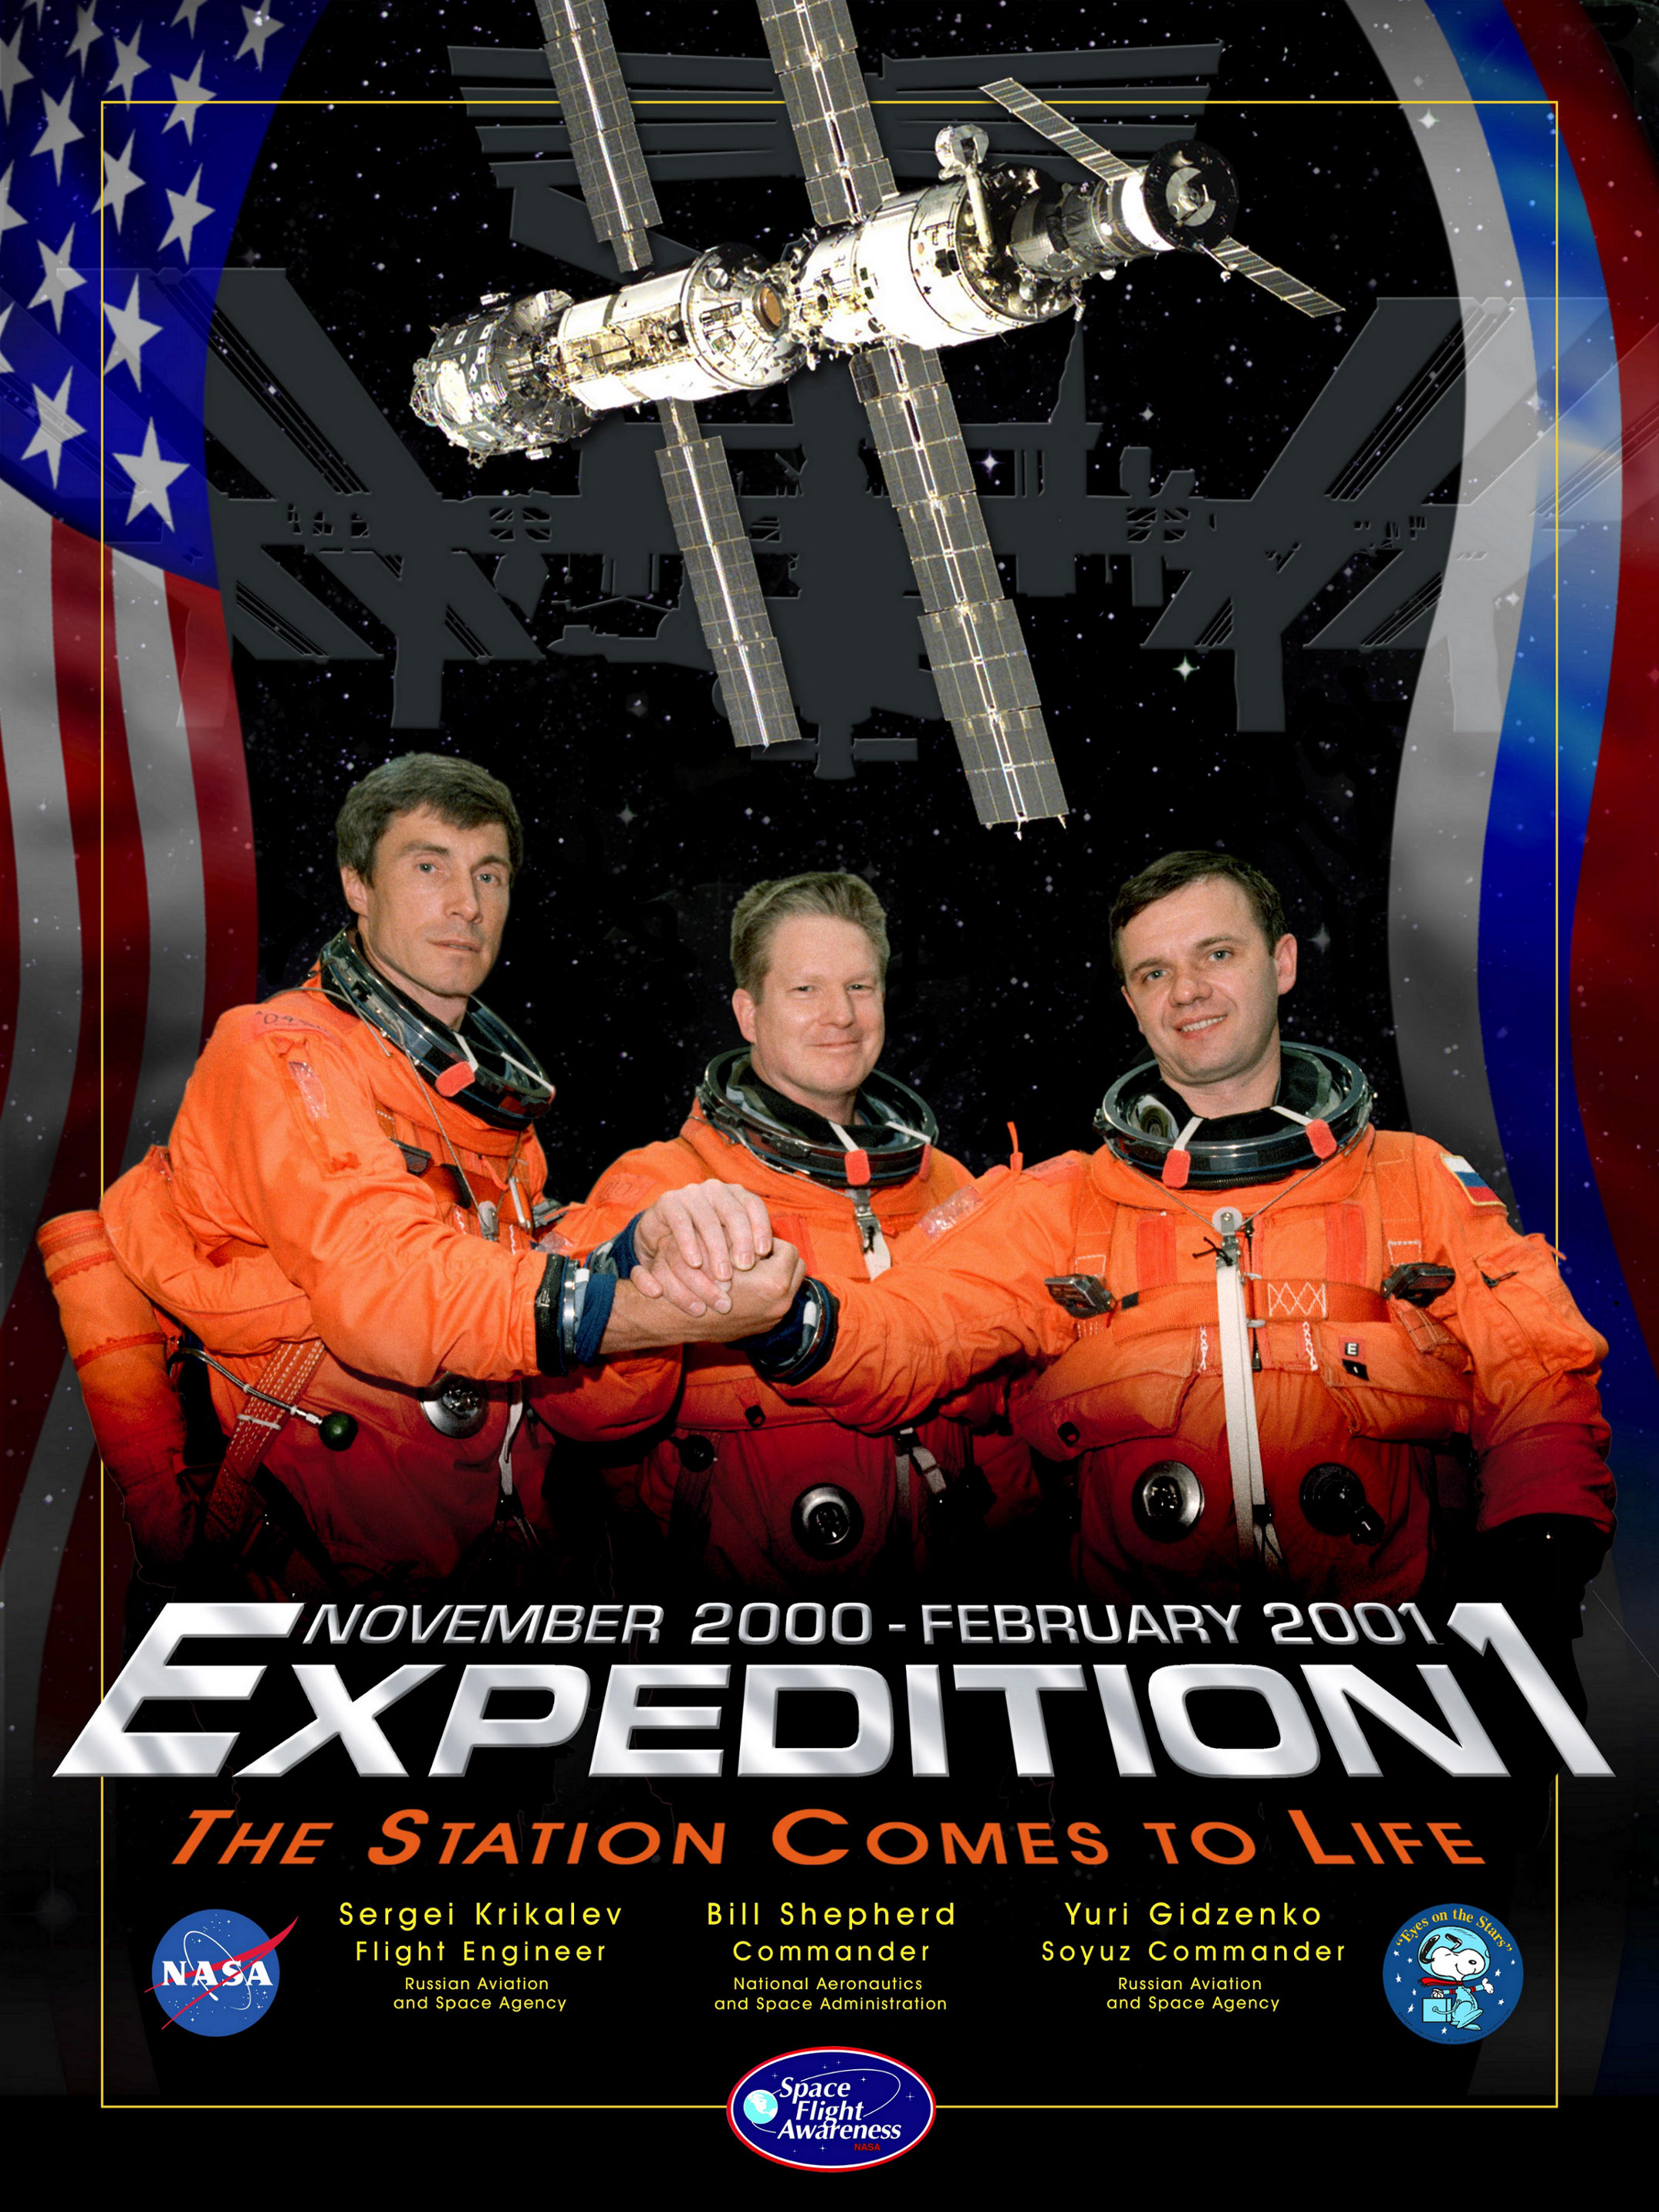 Expedition 1 crew poster